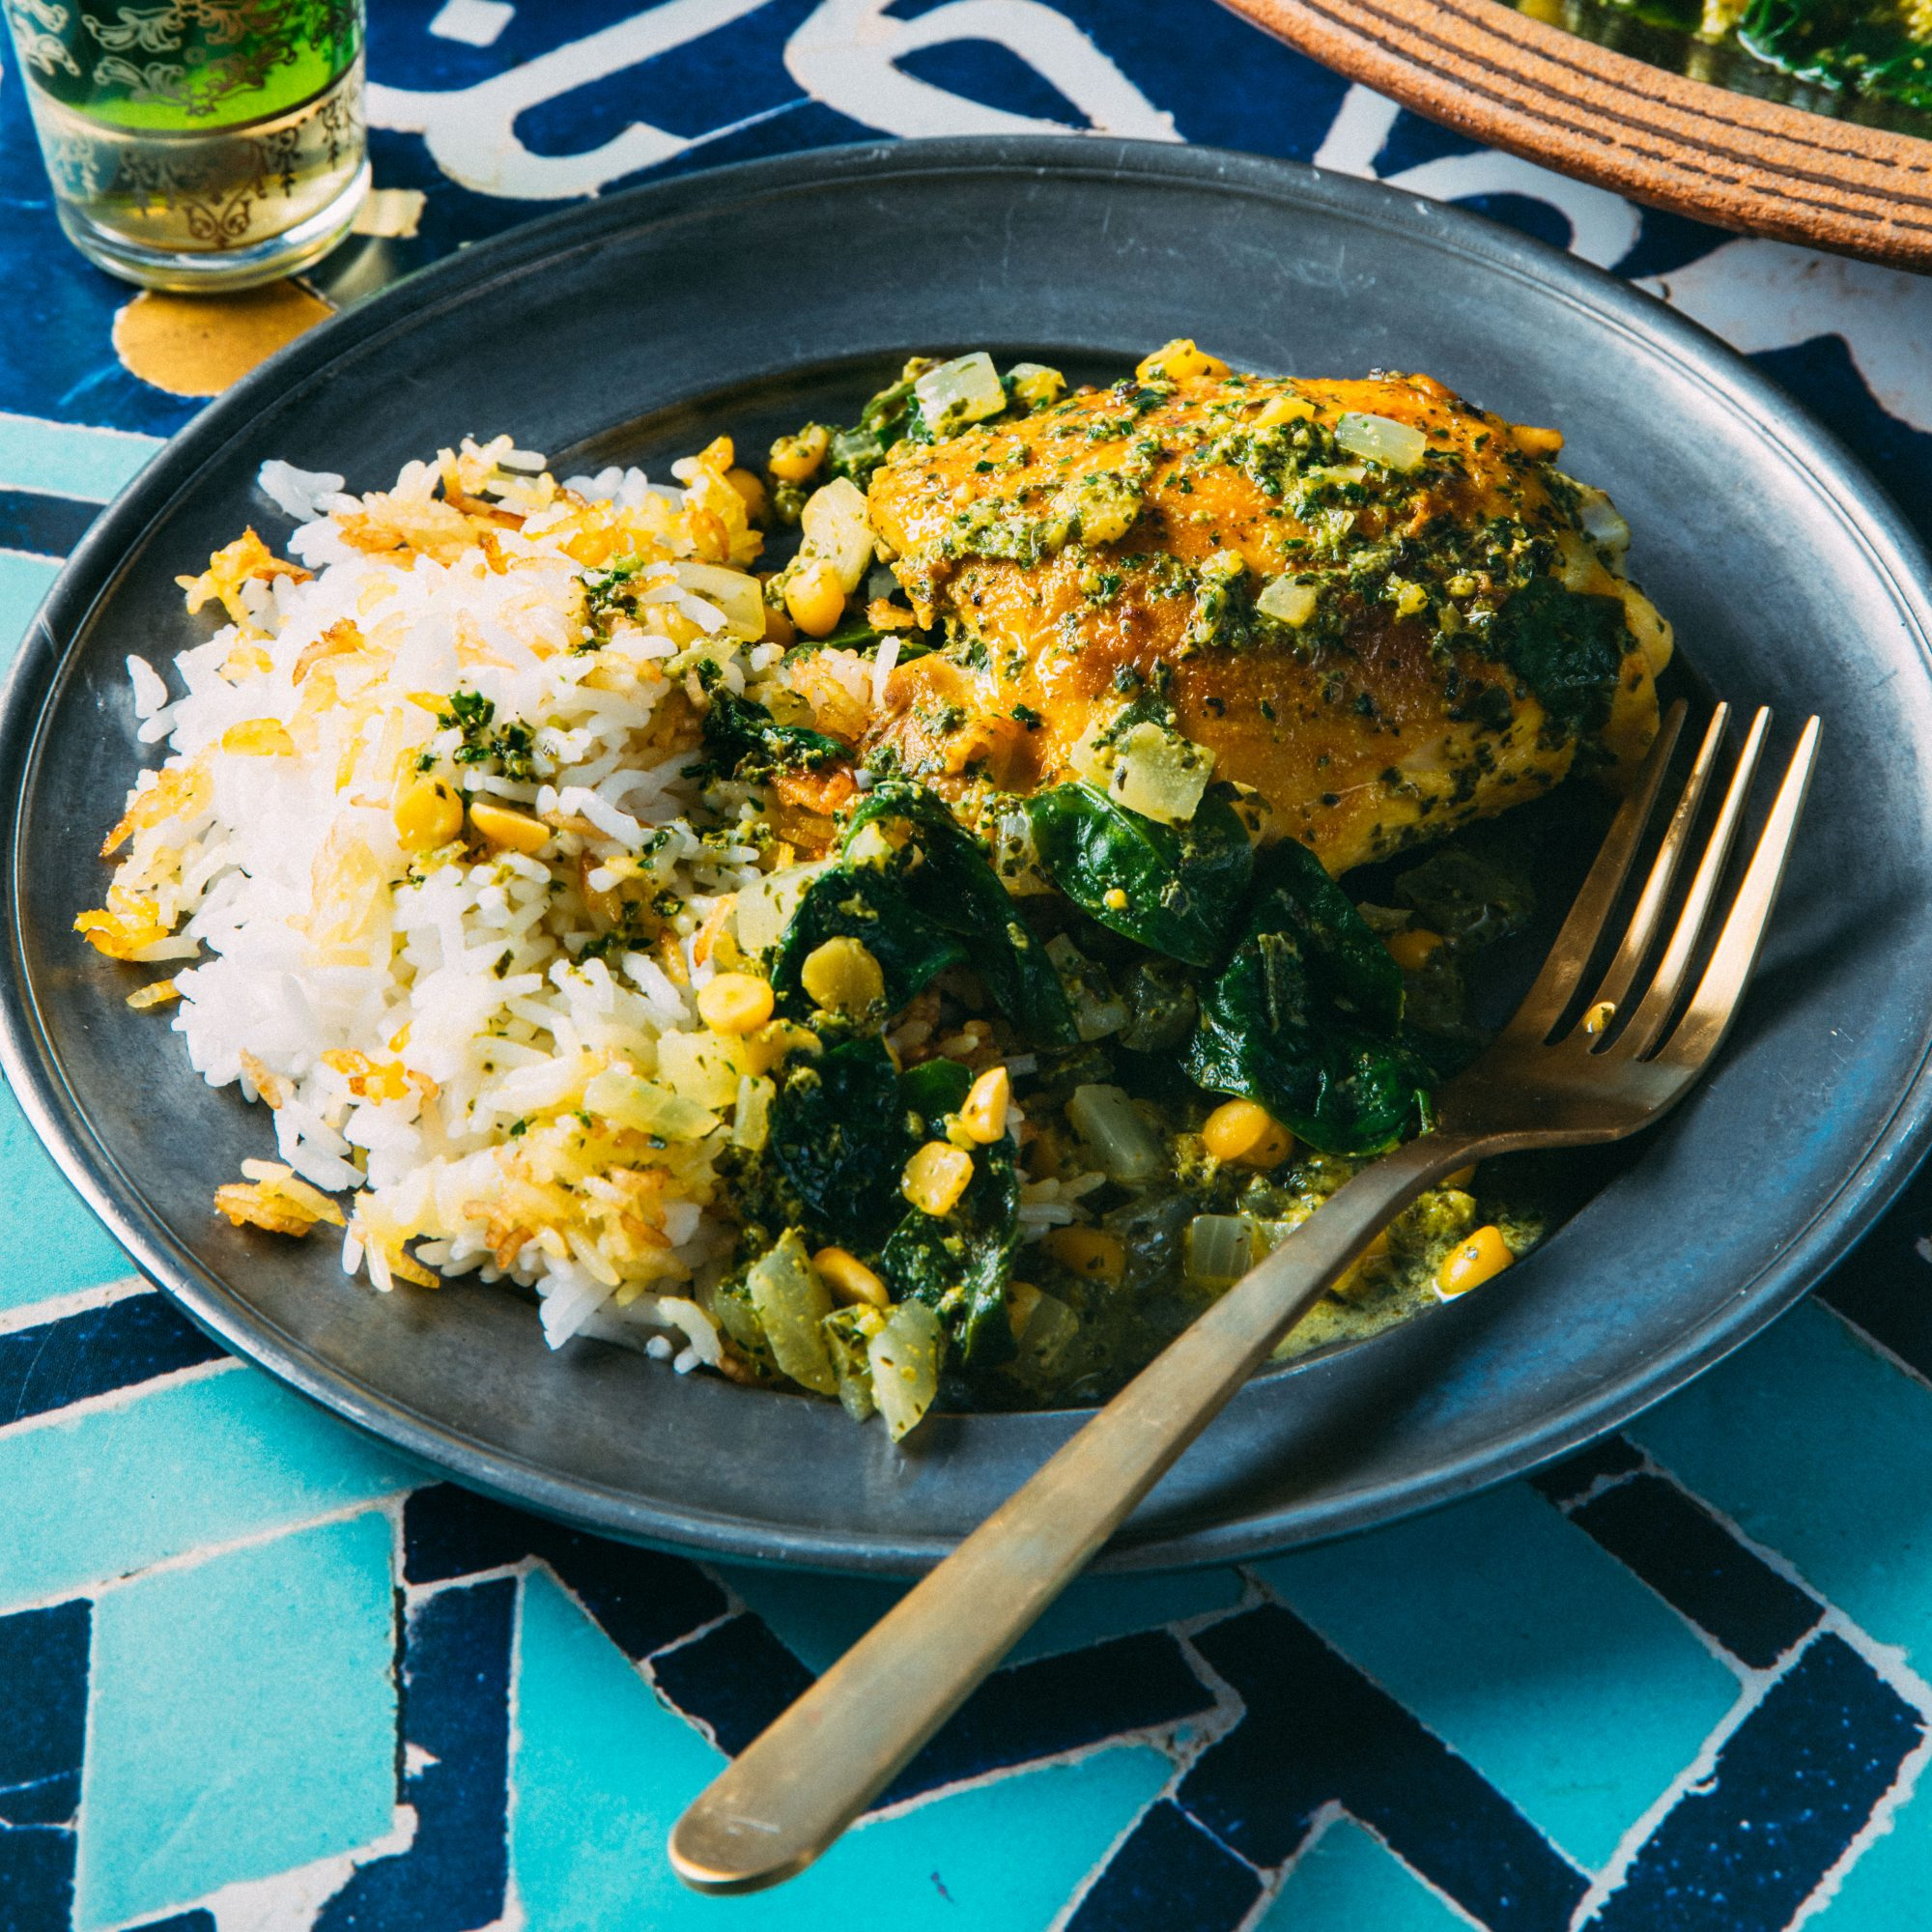 The author learned to make chicken stews such as this morgh-e torsh when she visited Iran.